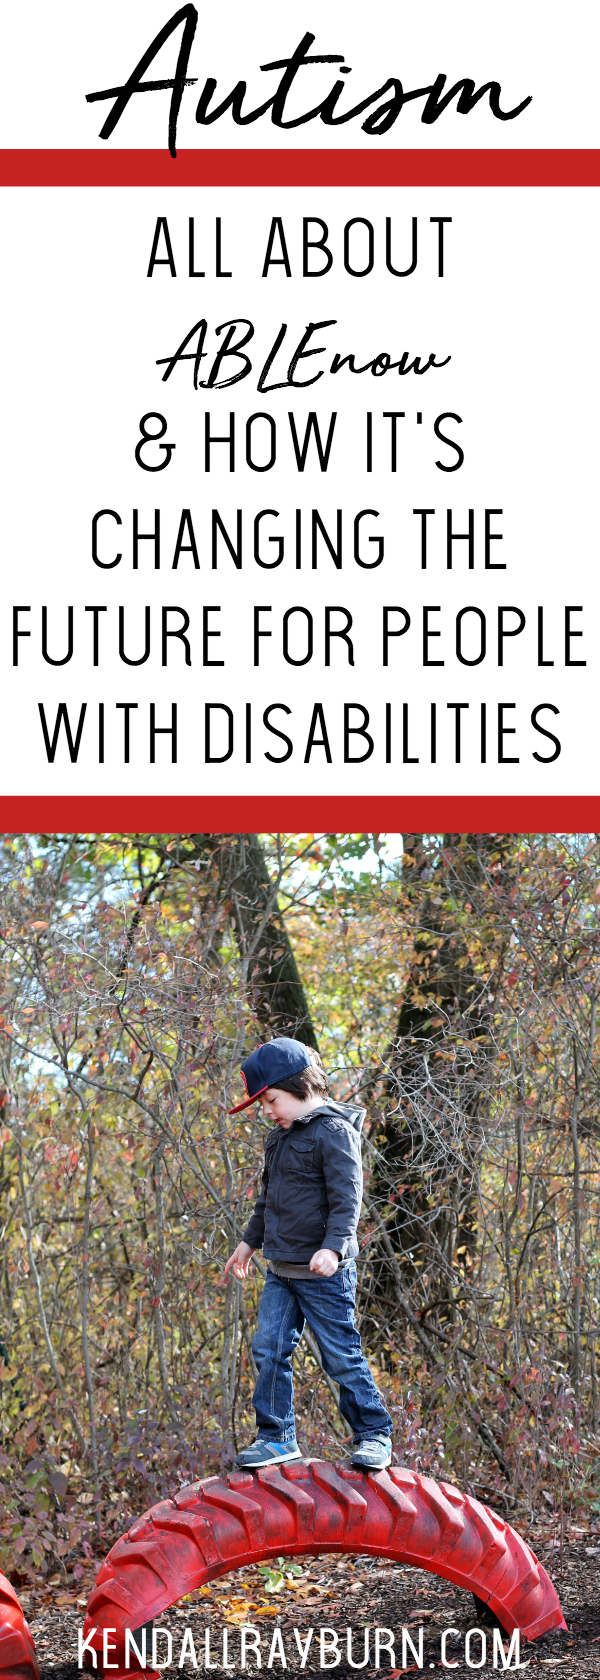 How ABLEnow is Changing the Future for People with Disabilities